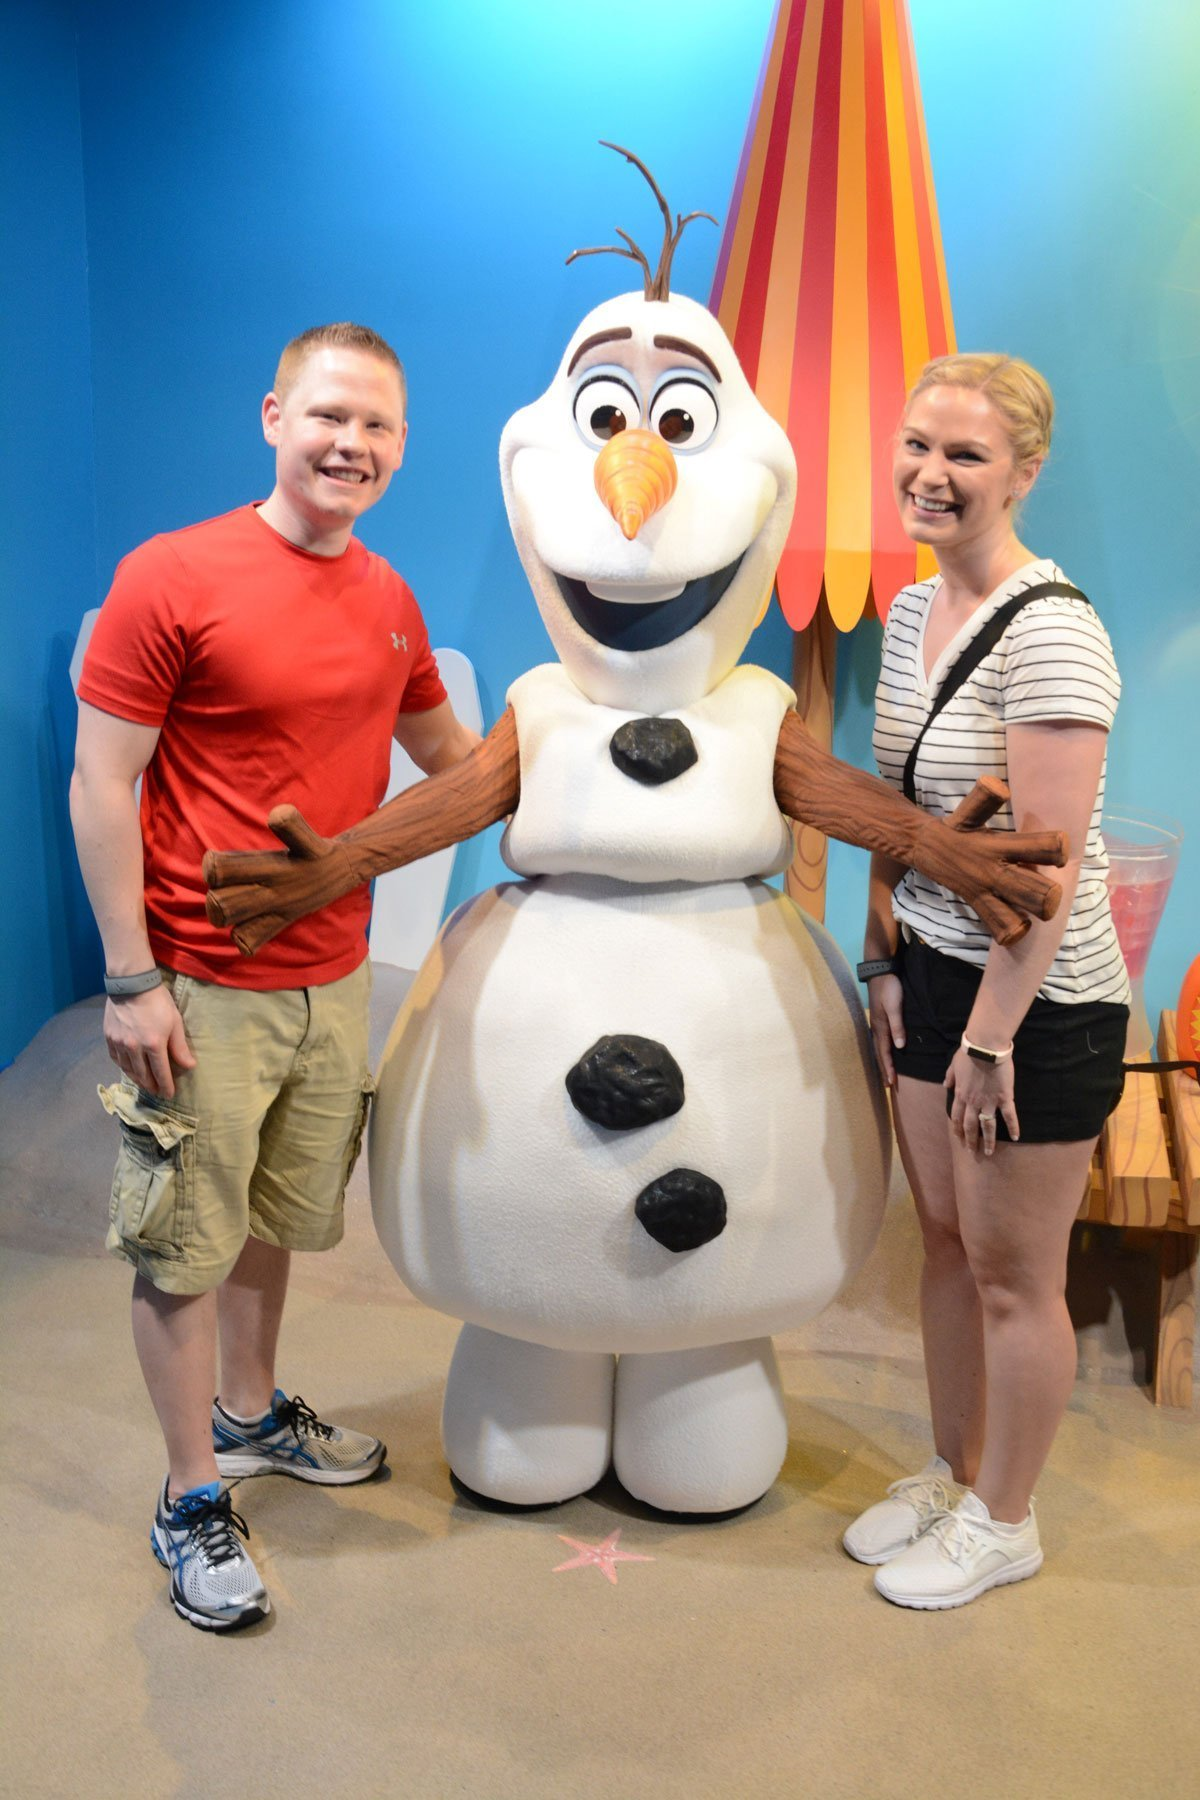 Meet-and-Greet with Olaf at Disney Hollywood Studios